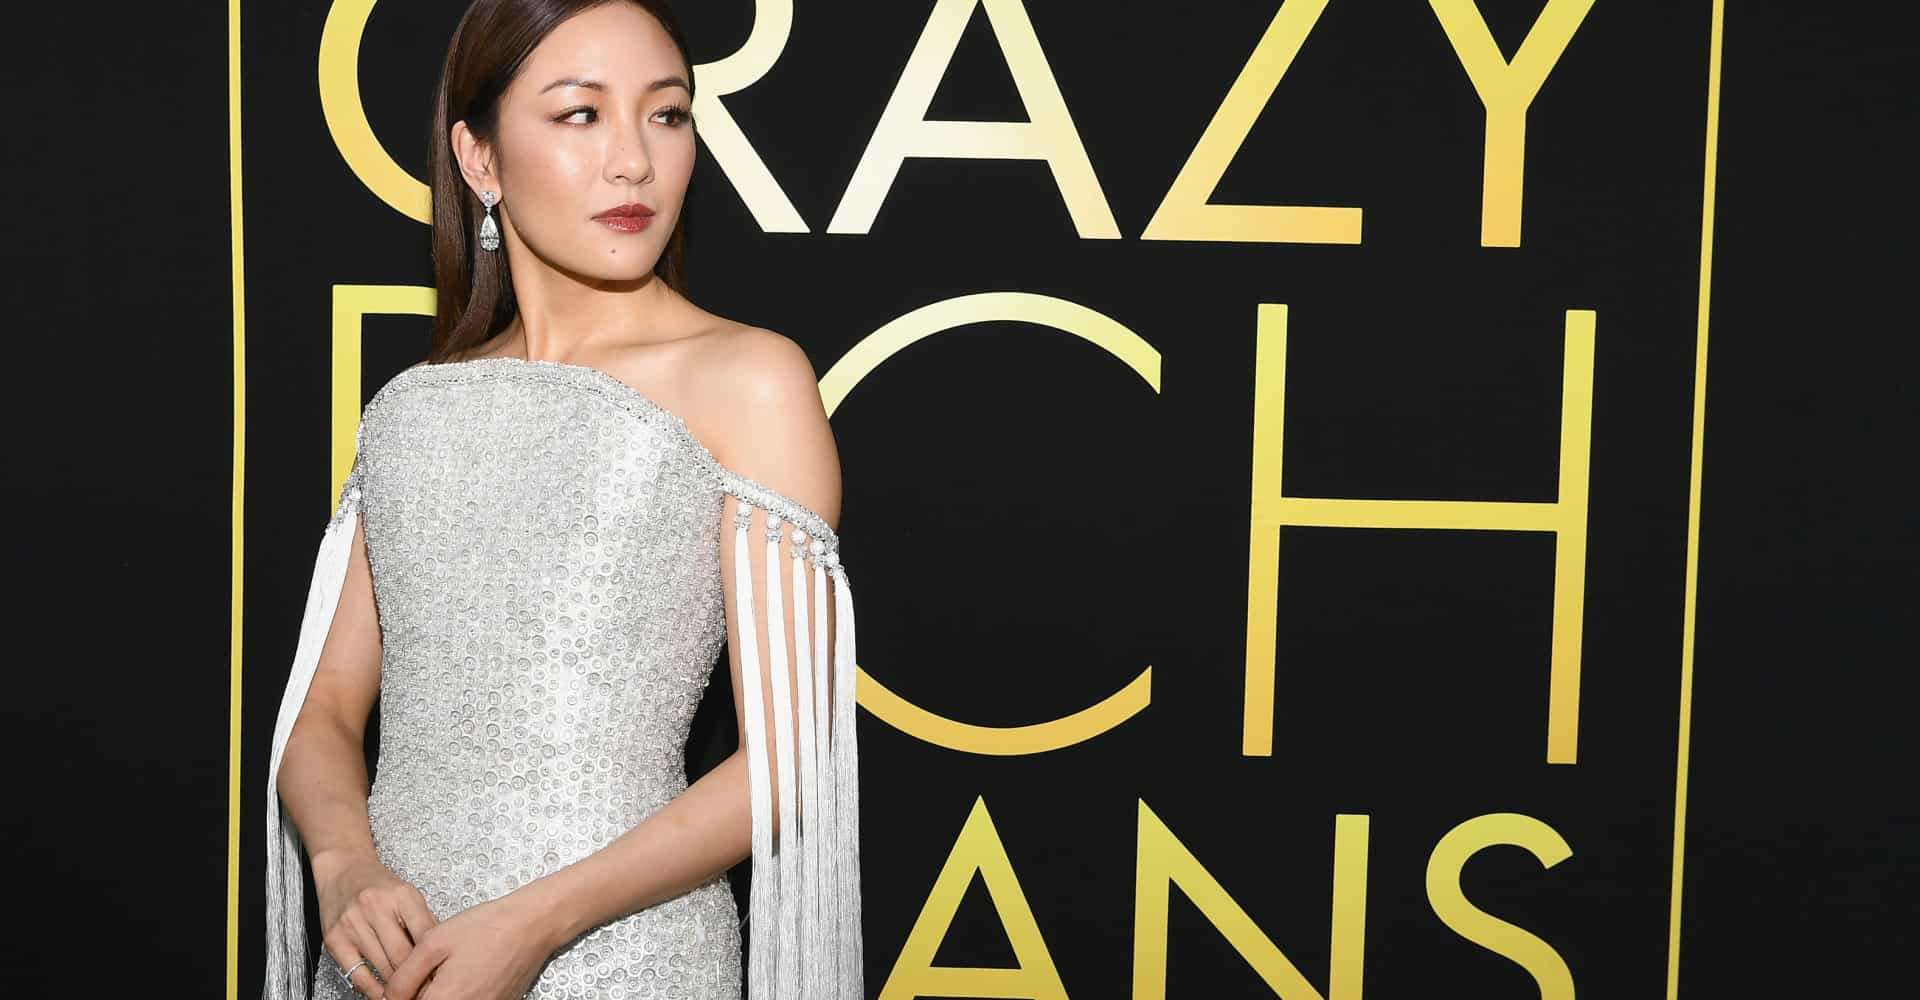 The XXX-rated scenes that were cut from 'Crazy Rich Asians'